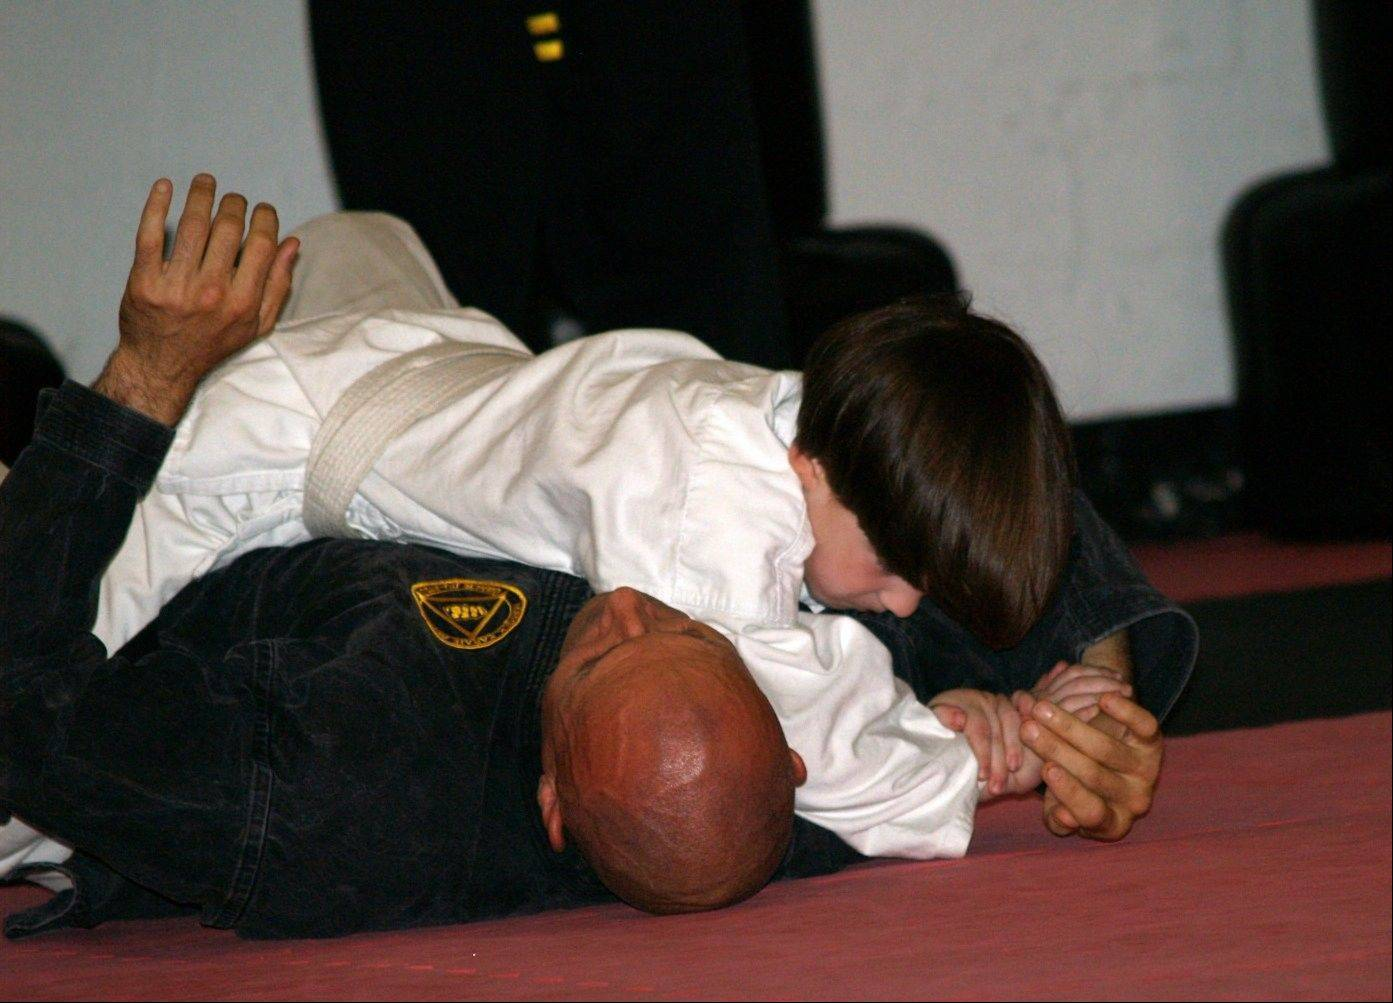 This June 2010 photo provided by Lisa Suhay shows her son Quin Suhay, now 8, tackling Bill Odom, owner of Norfolk Karate Academy in Norfolk, Va., as part of a bullyproofing class that combines jujitsu _ defensive moves only, no punching or kicking _ with verbal strategies. Other types of bullyproofing programs, including guides for parents and regular classroom curricula, seek to make kids l